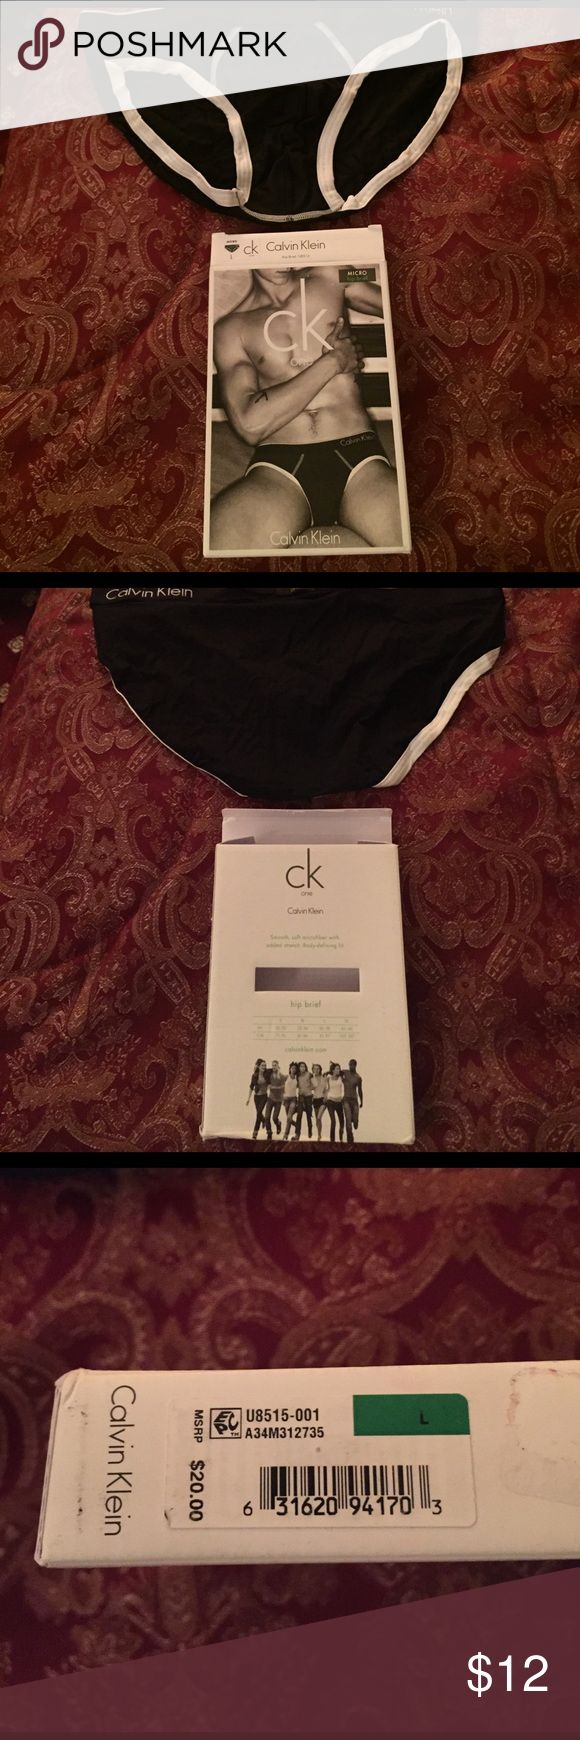 Men's Calvin Klein Micro Hip Brief Underwear Black Men's Calvin Klein Micro Hip Brief Underwear....Size Large....91% nylon and 9% elastic....color black...made in Thailand...new and in box Calvin Klein Underwear & Socks Briefs